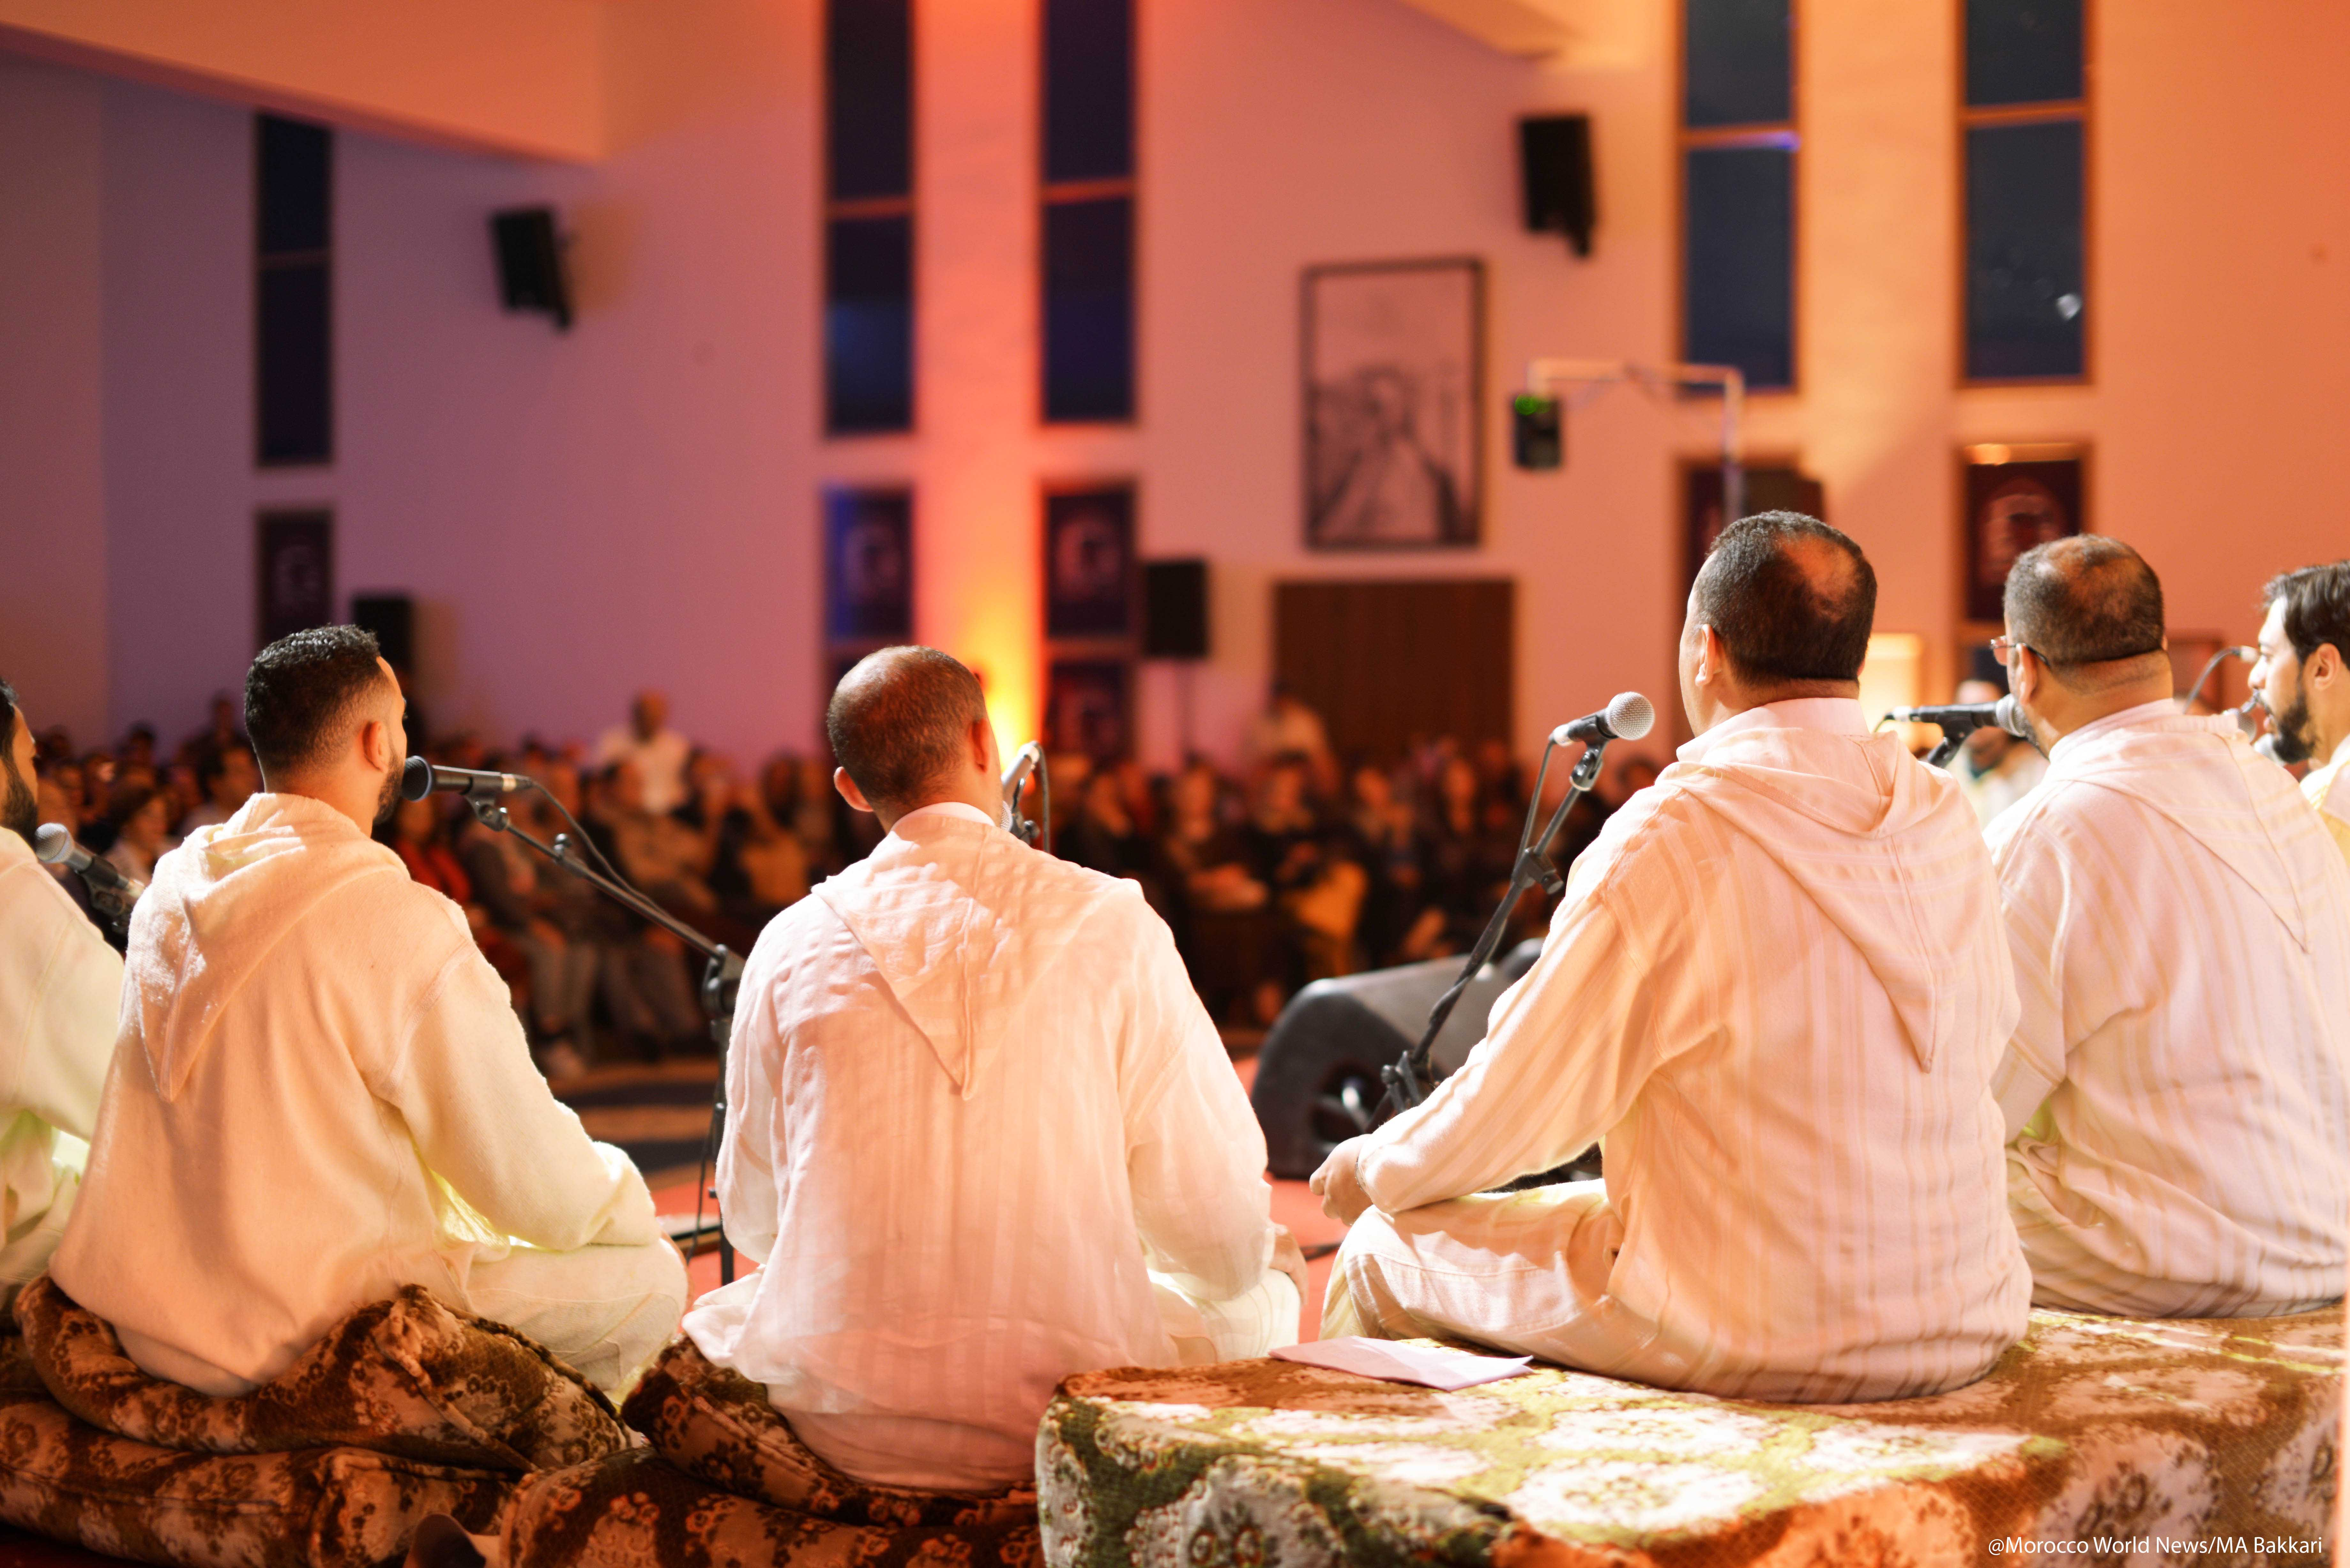 Sufi music group Tariqa Boutchichiya